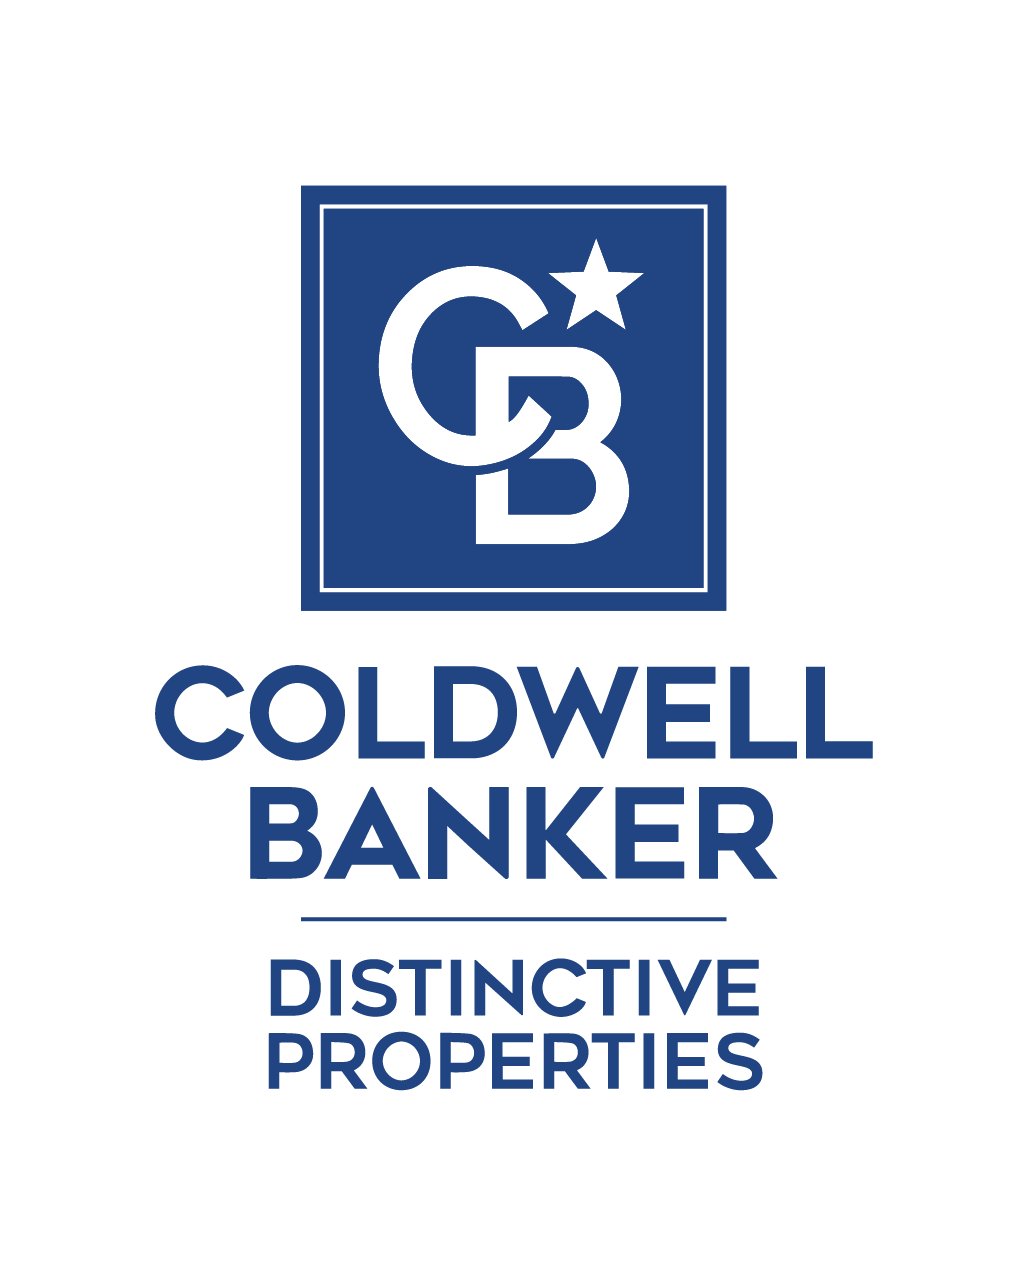 Edwin Johnson - Coldwell Banker Distinctive Properties